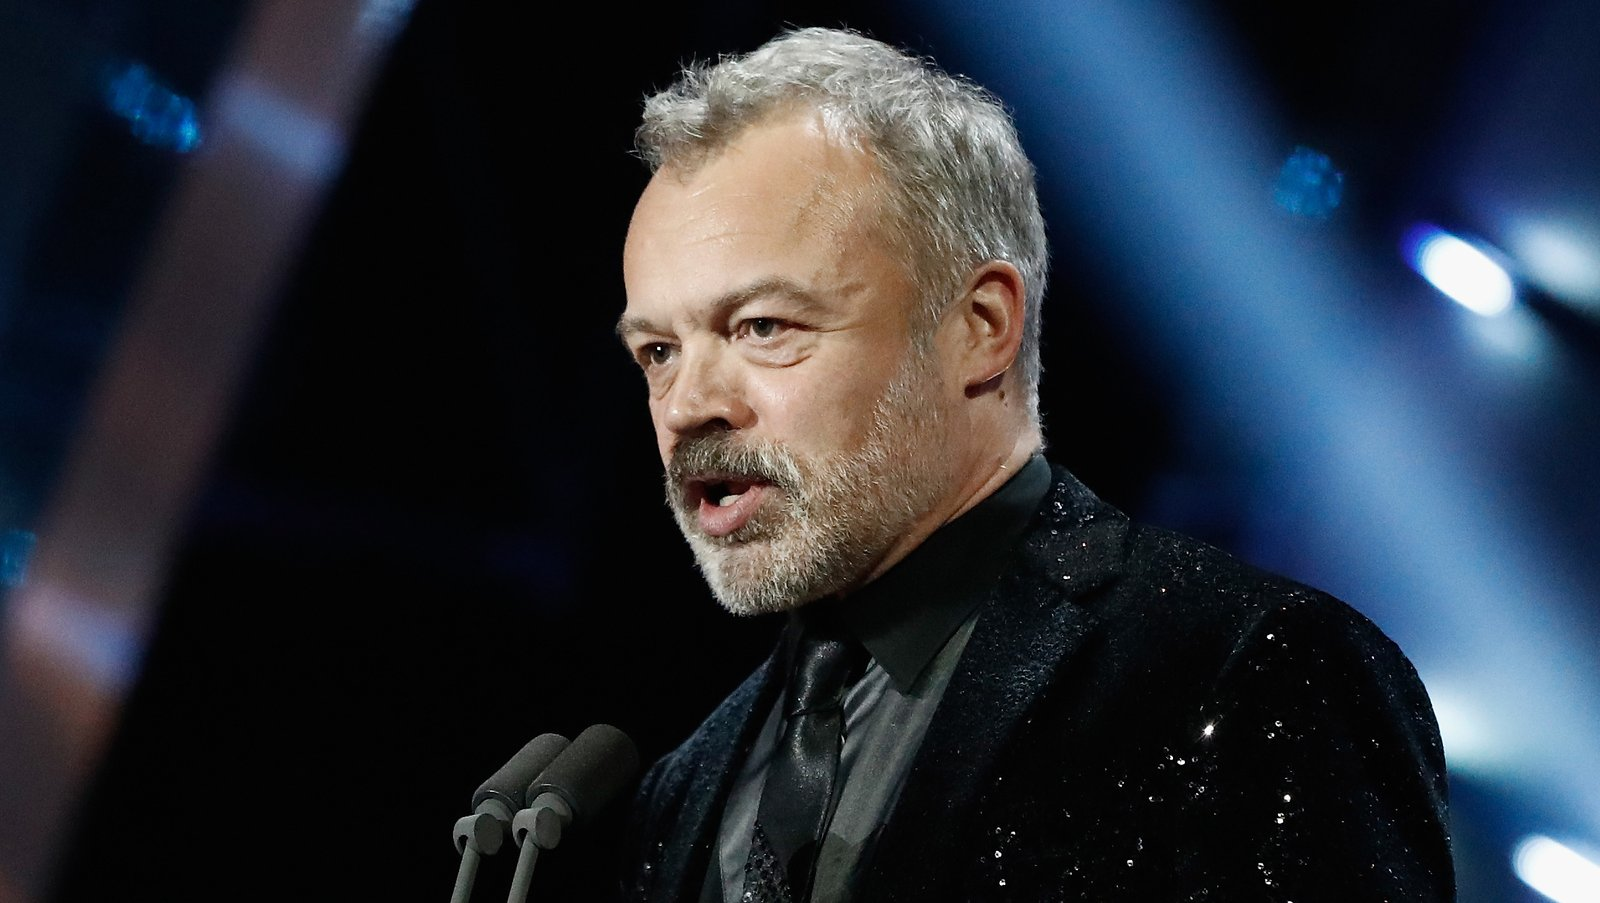 bearded celebrities graham norton